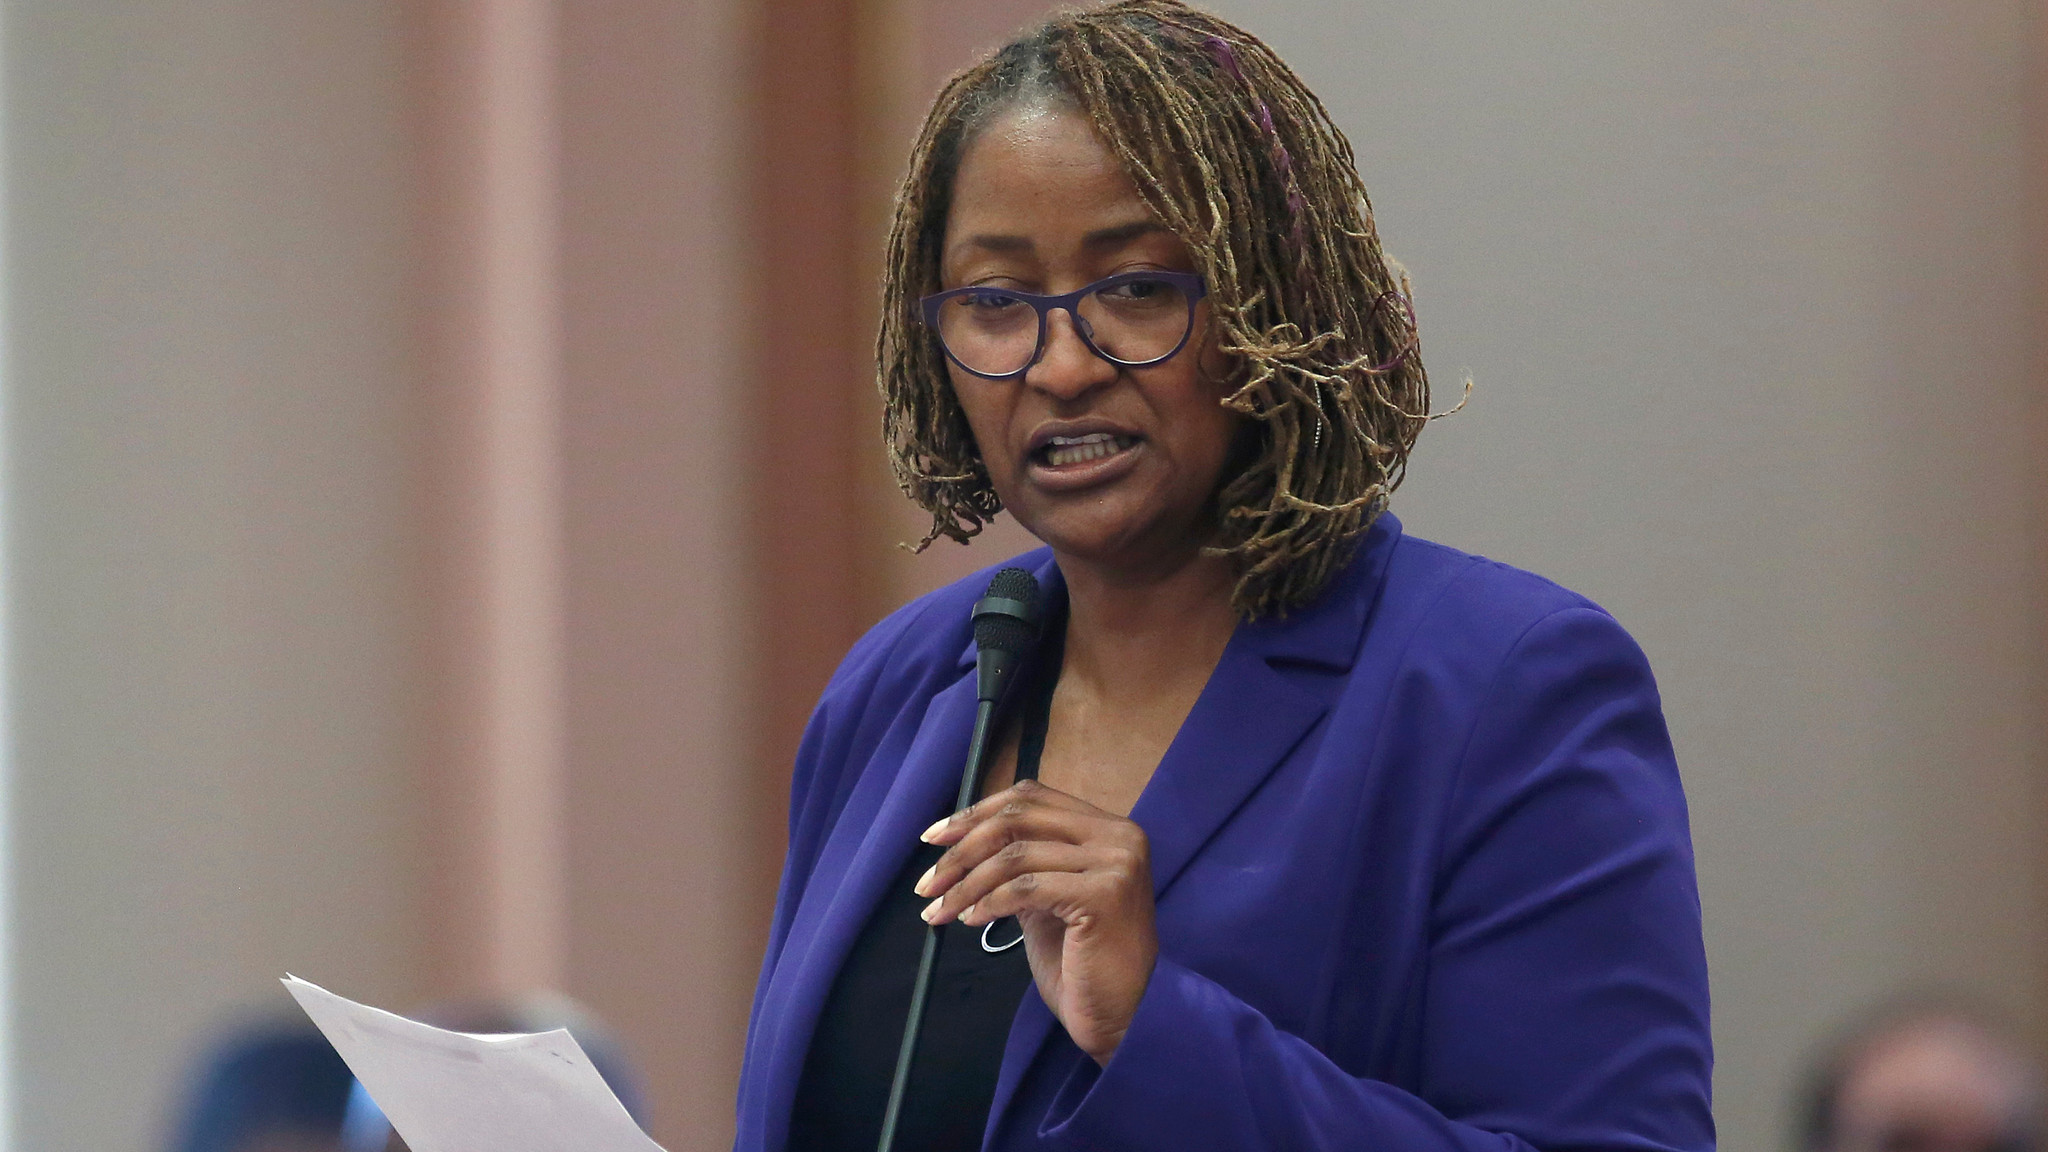 State Sen. Holly Mitchell (D-Los Angeles) says she's concerned about banks being unwilling to handle marijuana sales revenue because the drug is still illegal under federal law. (Rich Pedroncelli / Associated Press)